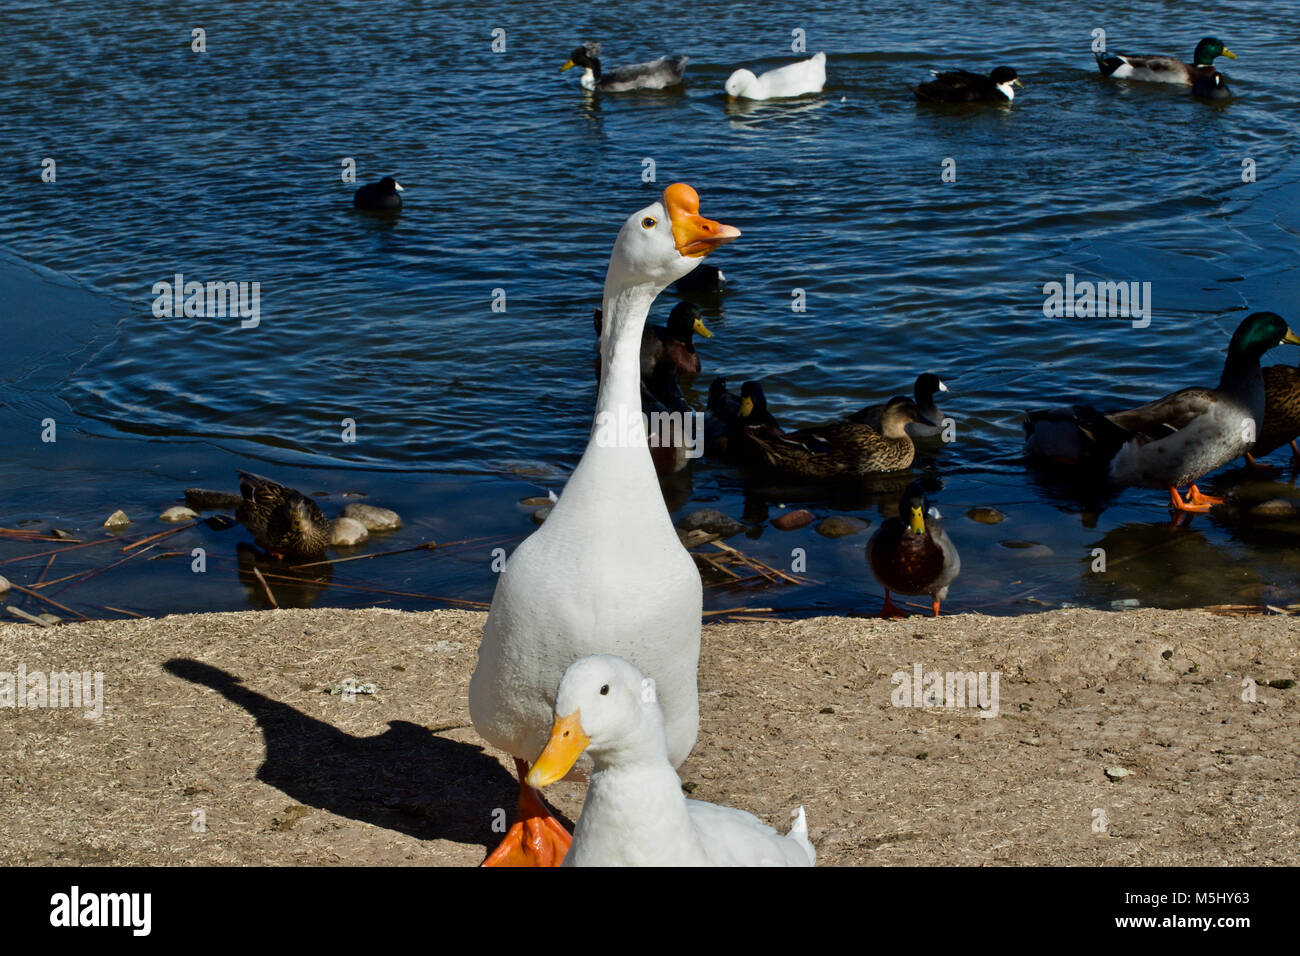 Tame geese and Ducks, Lindsey Park, Canyon, Texas - Stock Image